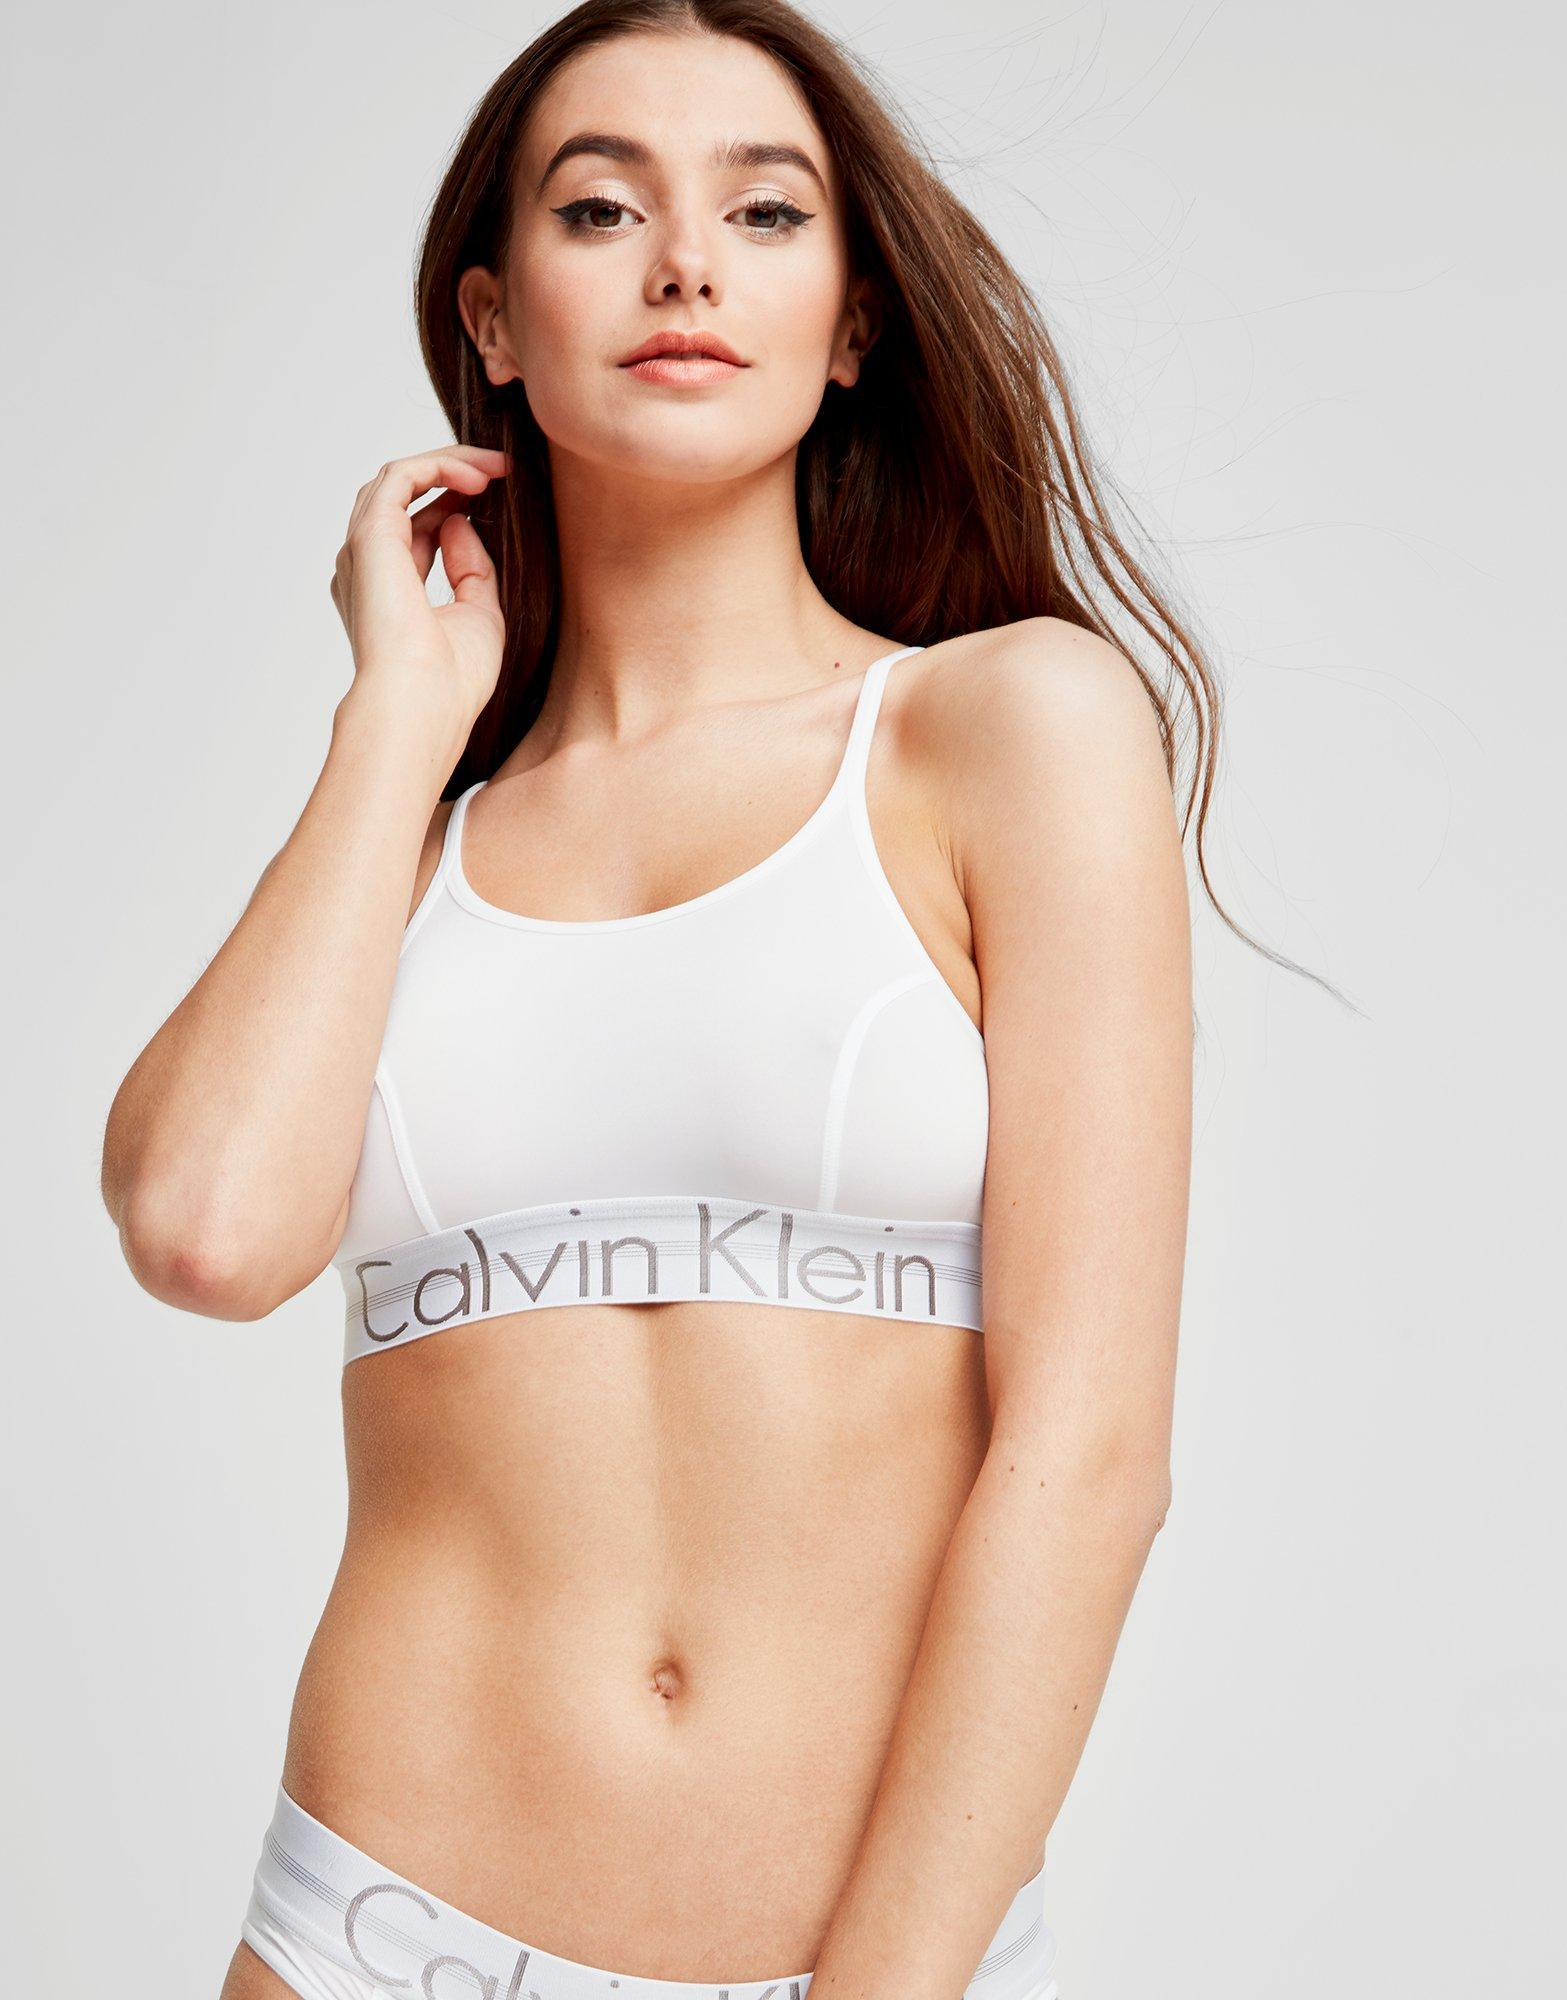 96130b39ea3b6c Calvin Klein Focused Fit Bra in White - Lyst